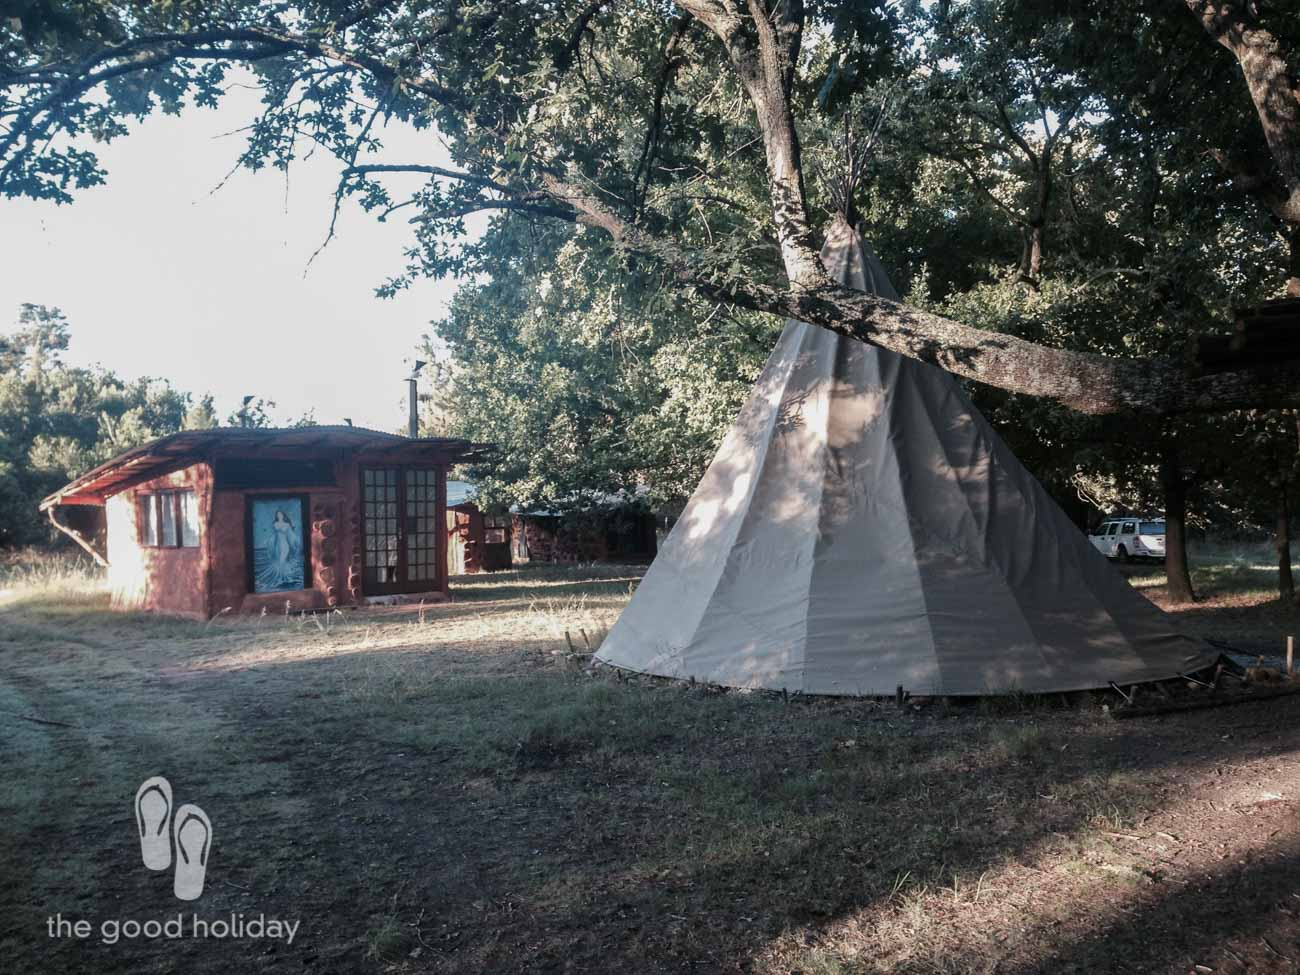 A Tipi Tent and a Hobbit House.